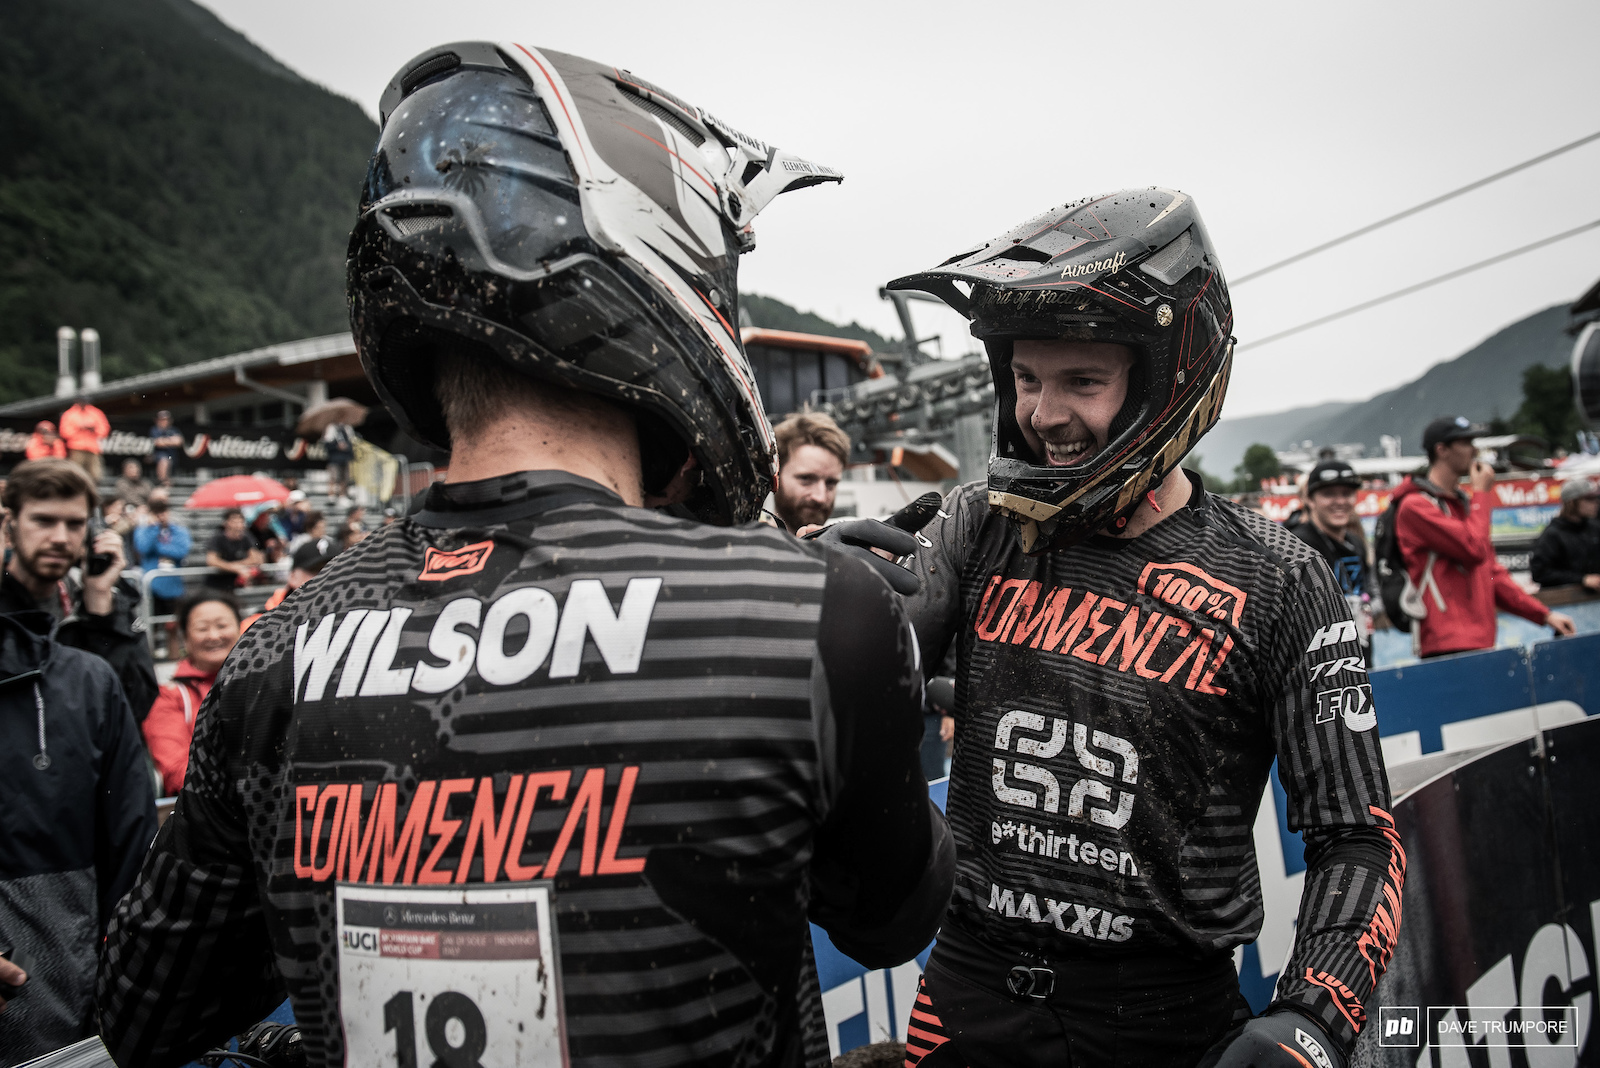 Teammates Thomas Estaque and Reese Wilson went 7th and 8th today after slipping and sliding down Val di Sole s Black Snake.